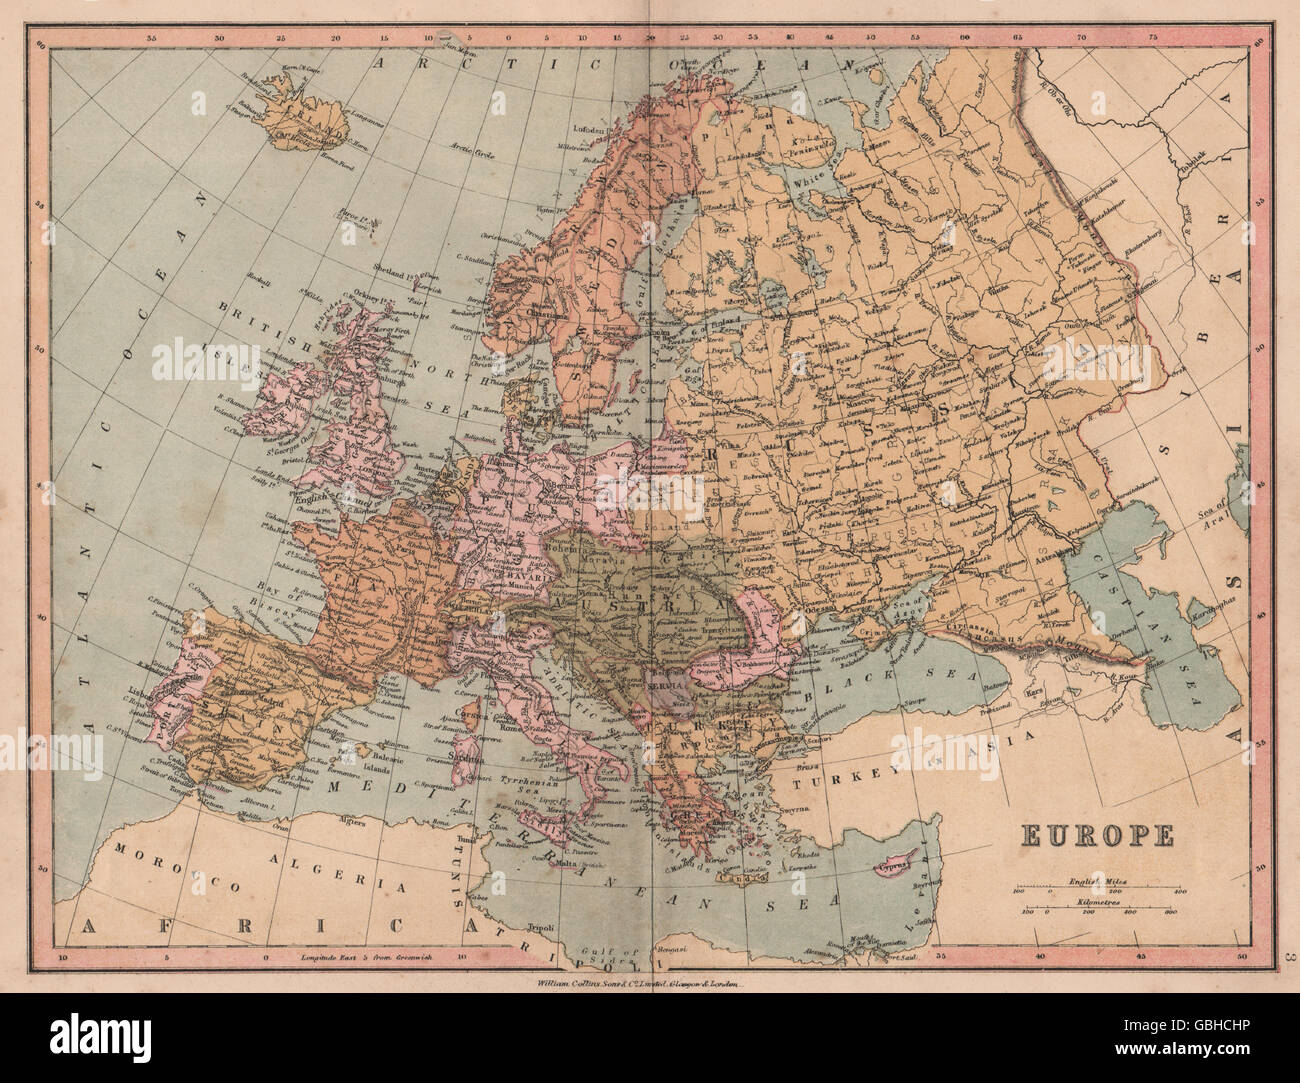 Europe political united germany marked as prussia collins 1880 united germany marked as prussia collins 1880 antique map gumiabroncs Images